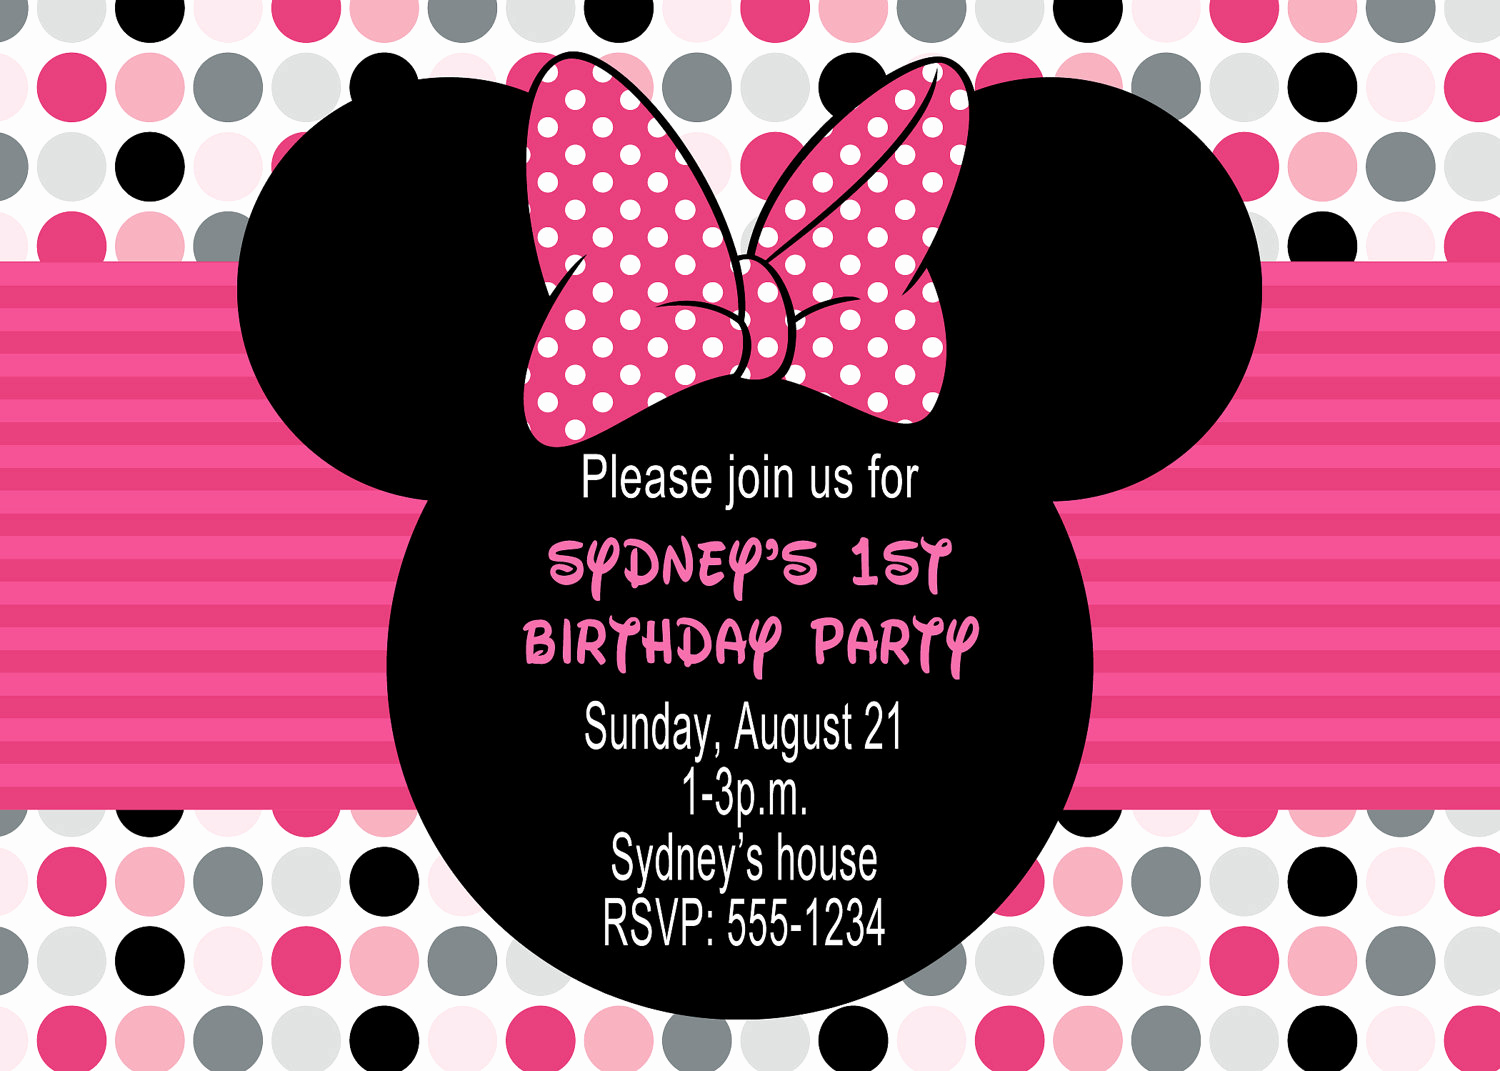 Minnie Mouse Invitation Template Luxury Minnie Mouse Birthday Party Invitations